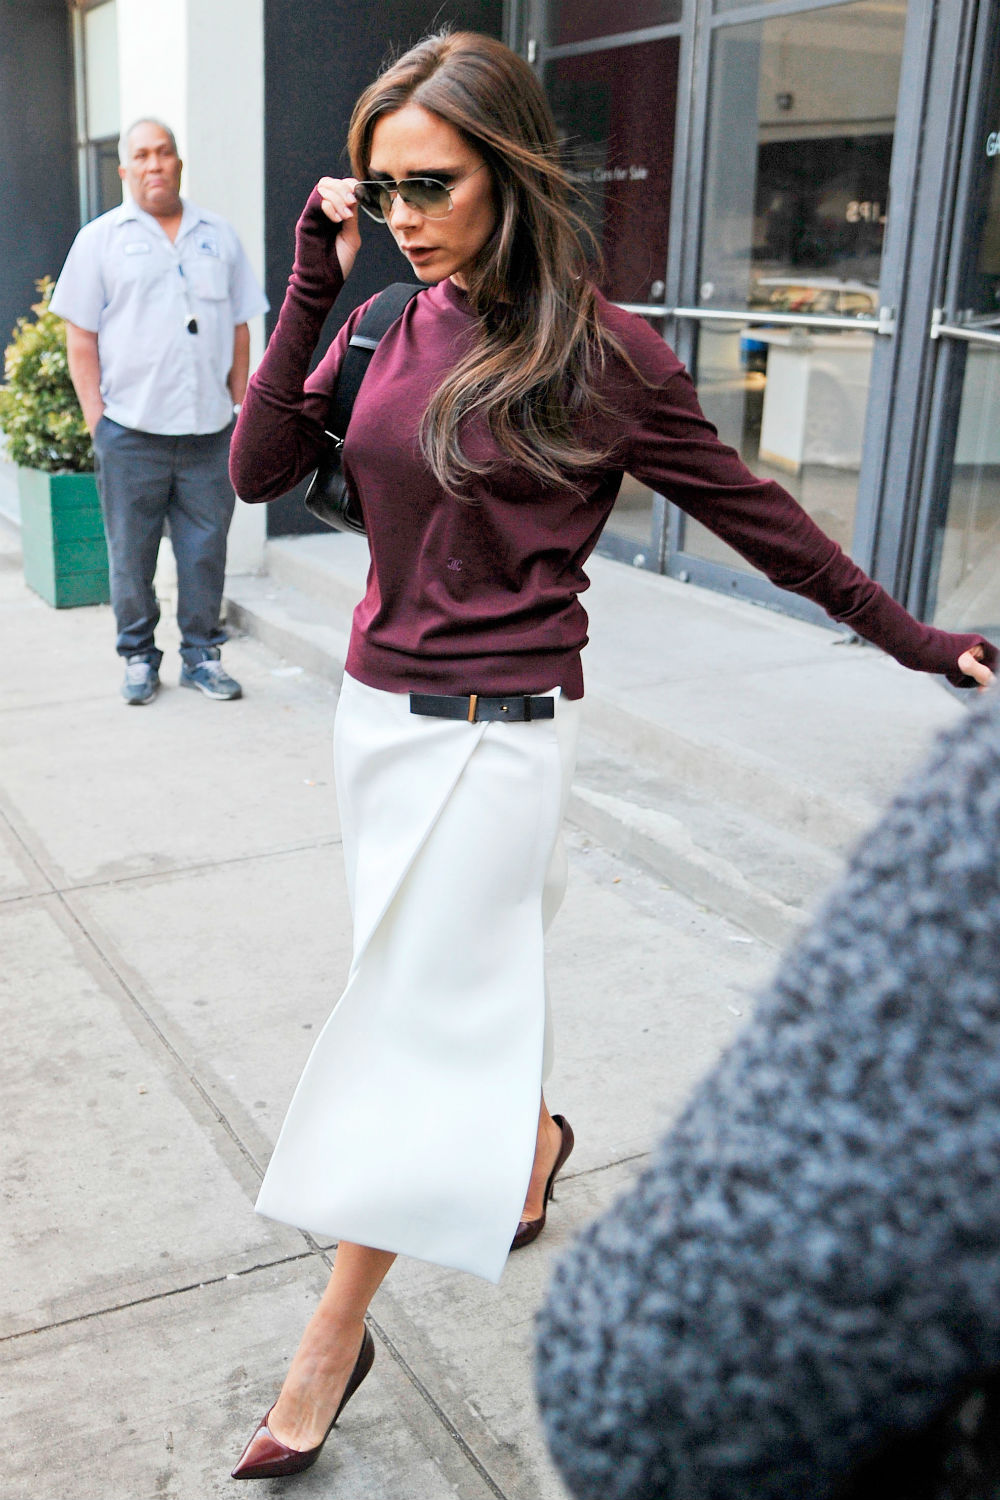 Victoria beckham skirts latest fashion 27